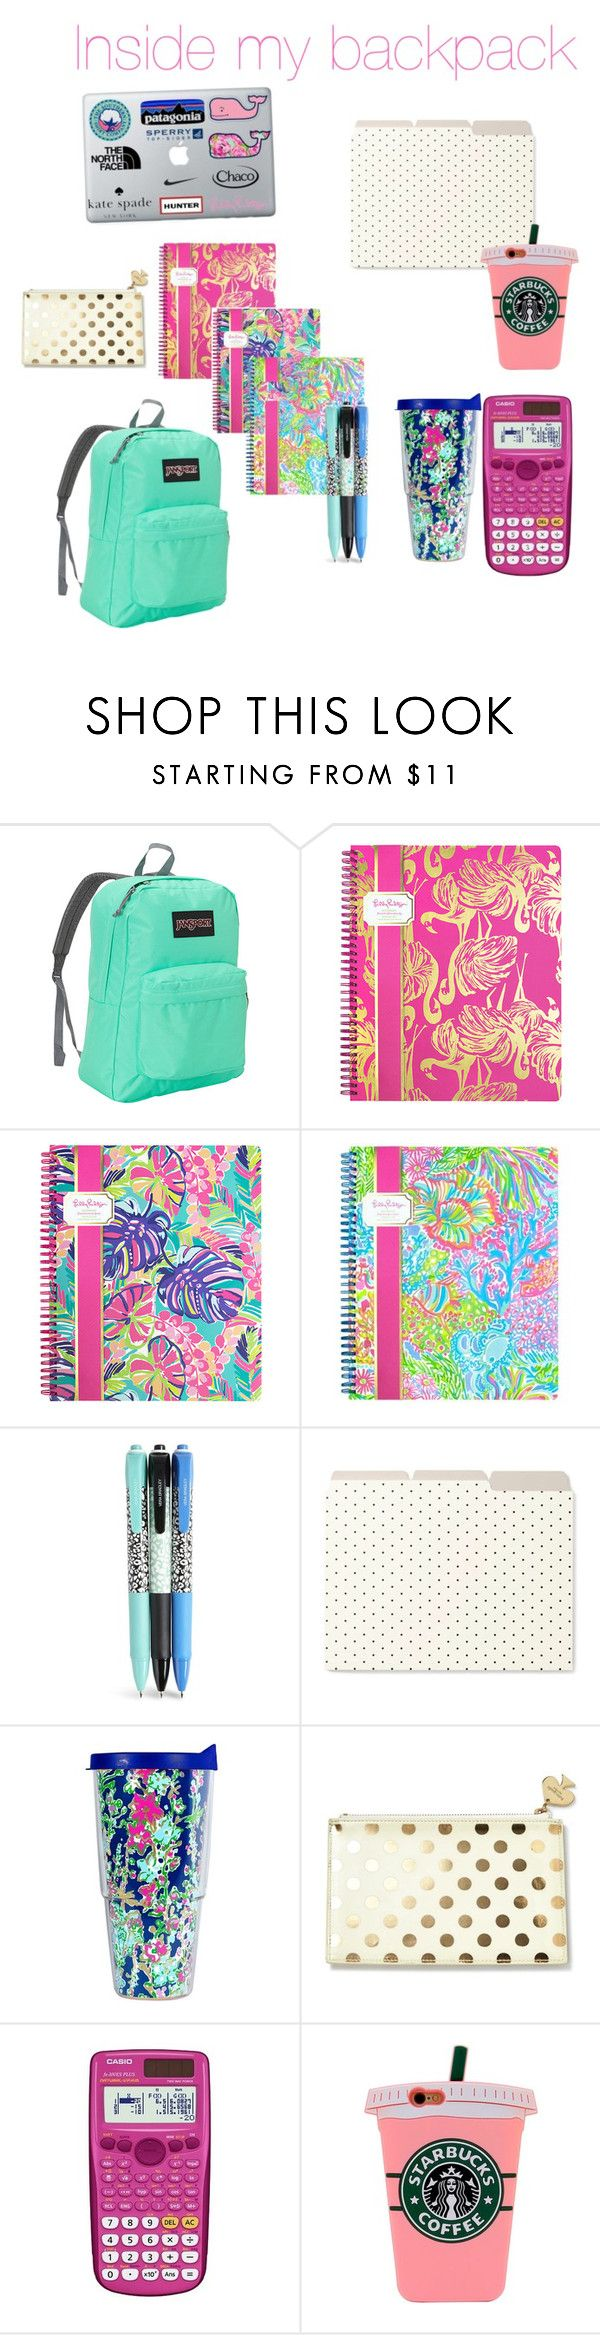 """Inside my backpack 🎒"" by fashionwithsofia ❤ liked on Polyvore featuring JanSport, Lilly Pulitzer, Vera Bradley, Kate Spade and Casio"